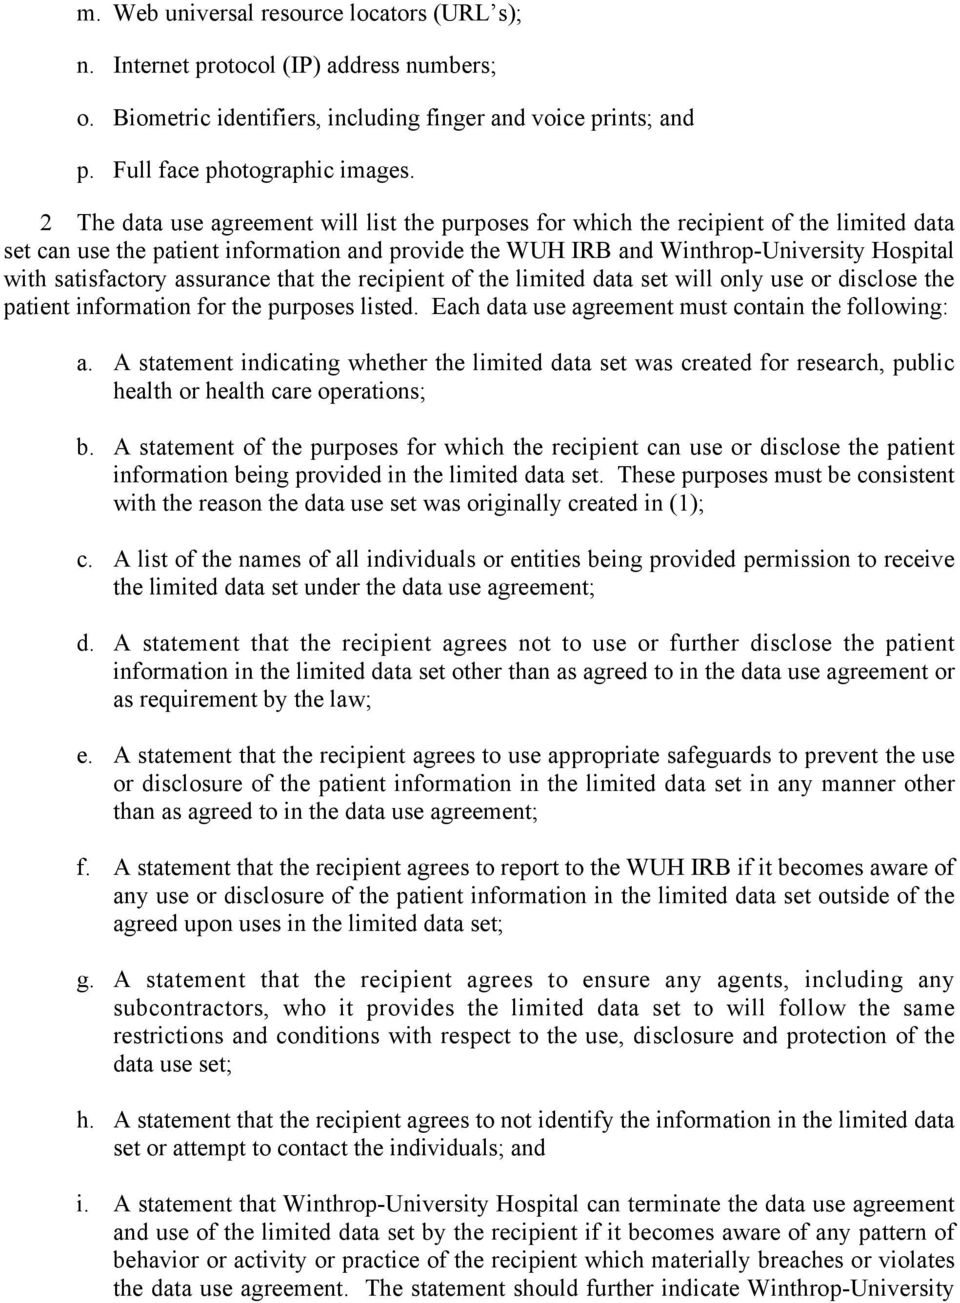 satisfactory assurance that the recipient of the limited data set will only use or disclose the patient information for the purposes listed. Each data use agreement must contain the following: a.